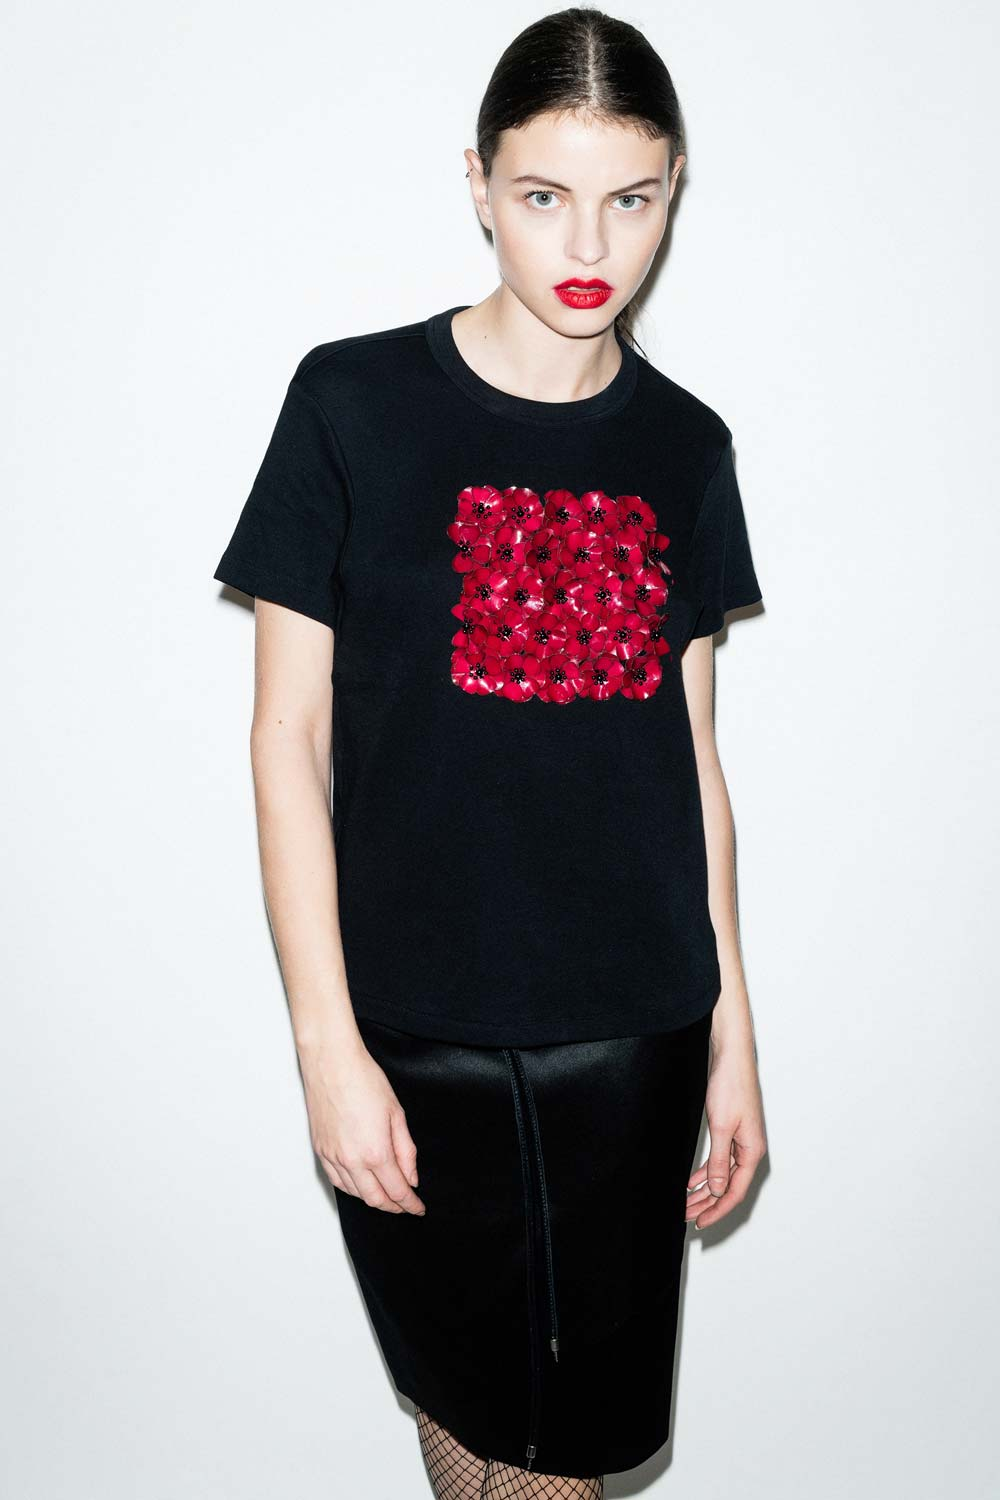 fflag-tee-shirt-poppies-ornement-fleurs-sequins-grenat1